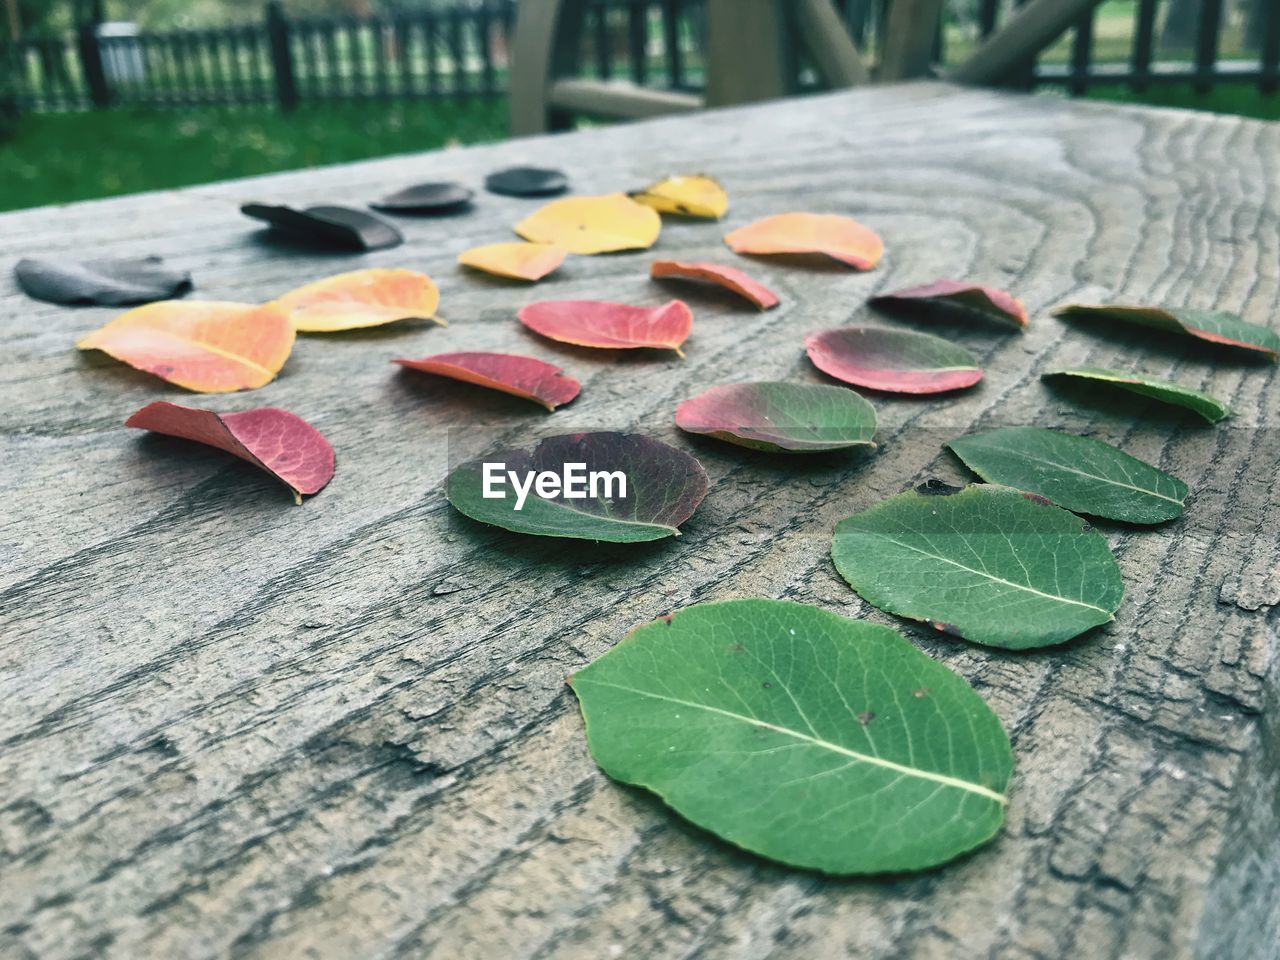 leaf, plant part, leaves, close-up, wood - material, green color, no people, nature, beauty in nature, table, plant, day, still life, outdoors, focus on foreground, freshness, fragility, vulnerability, high angle view, selective focus